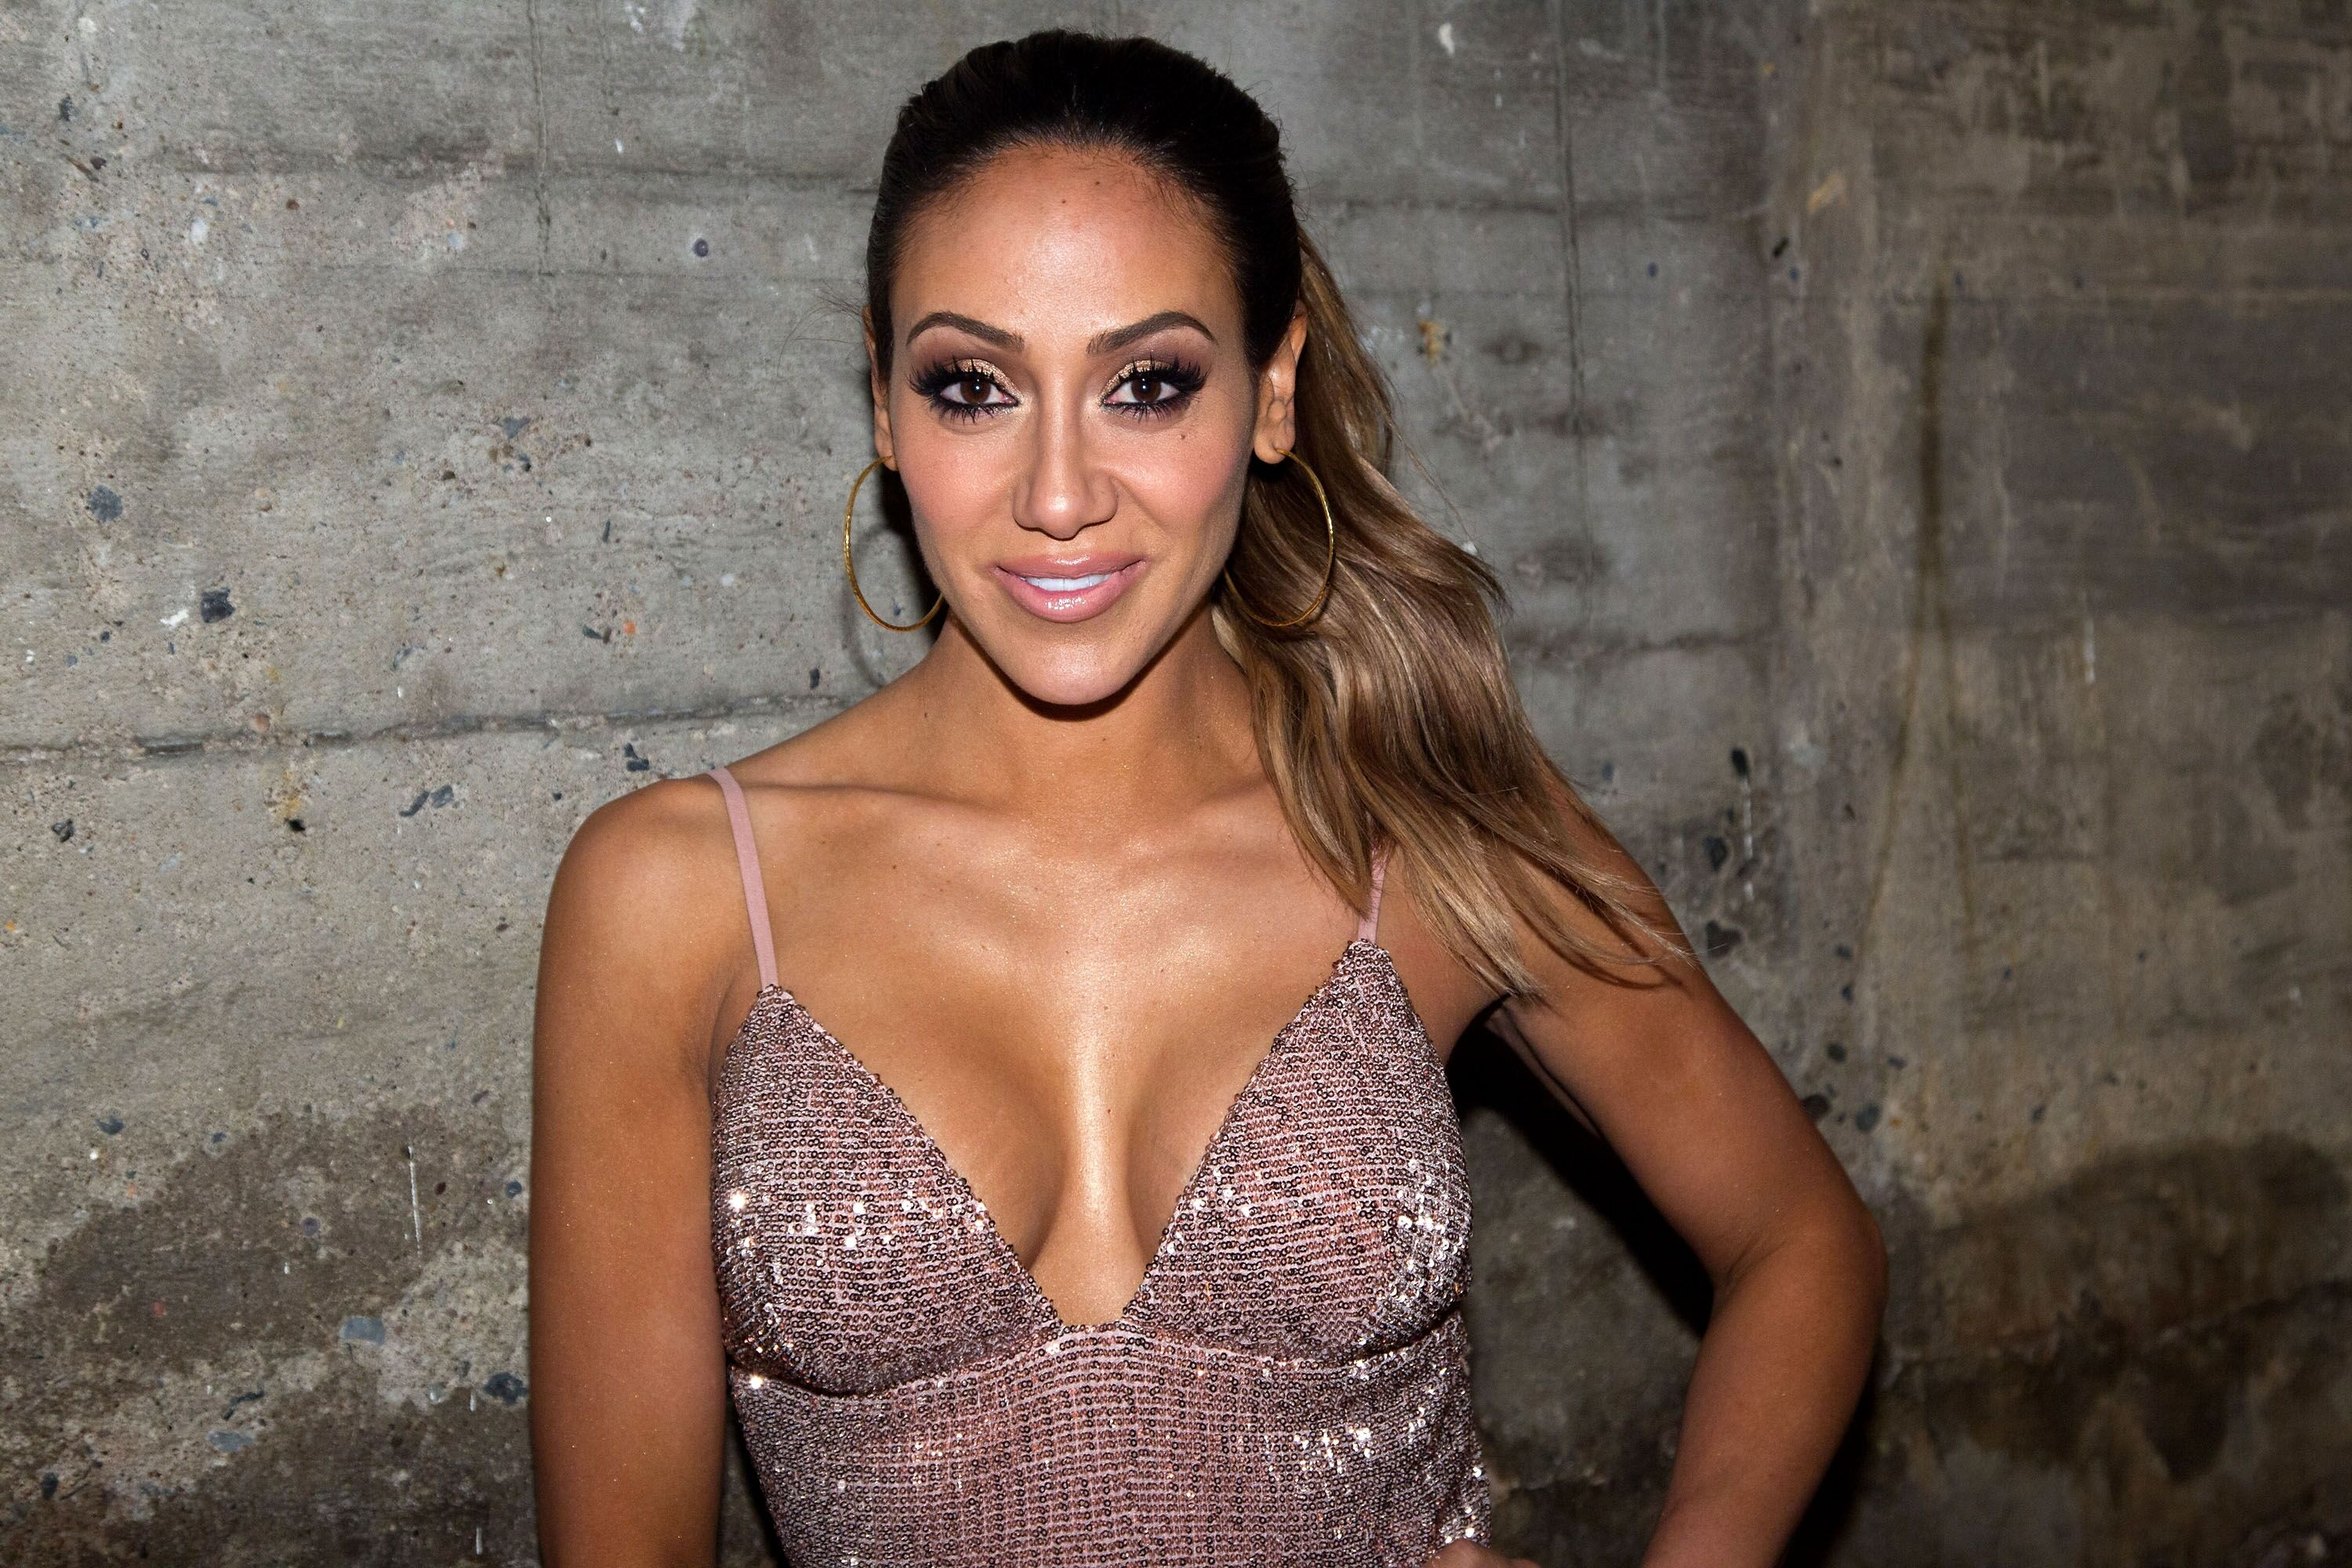 Melissa Gorga flashes a smile during a red carpet event. | Source: Getty Images